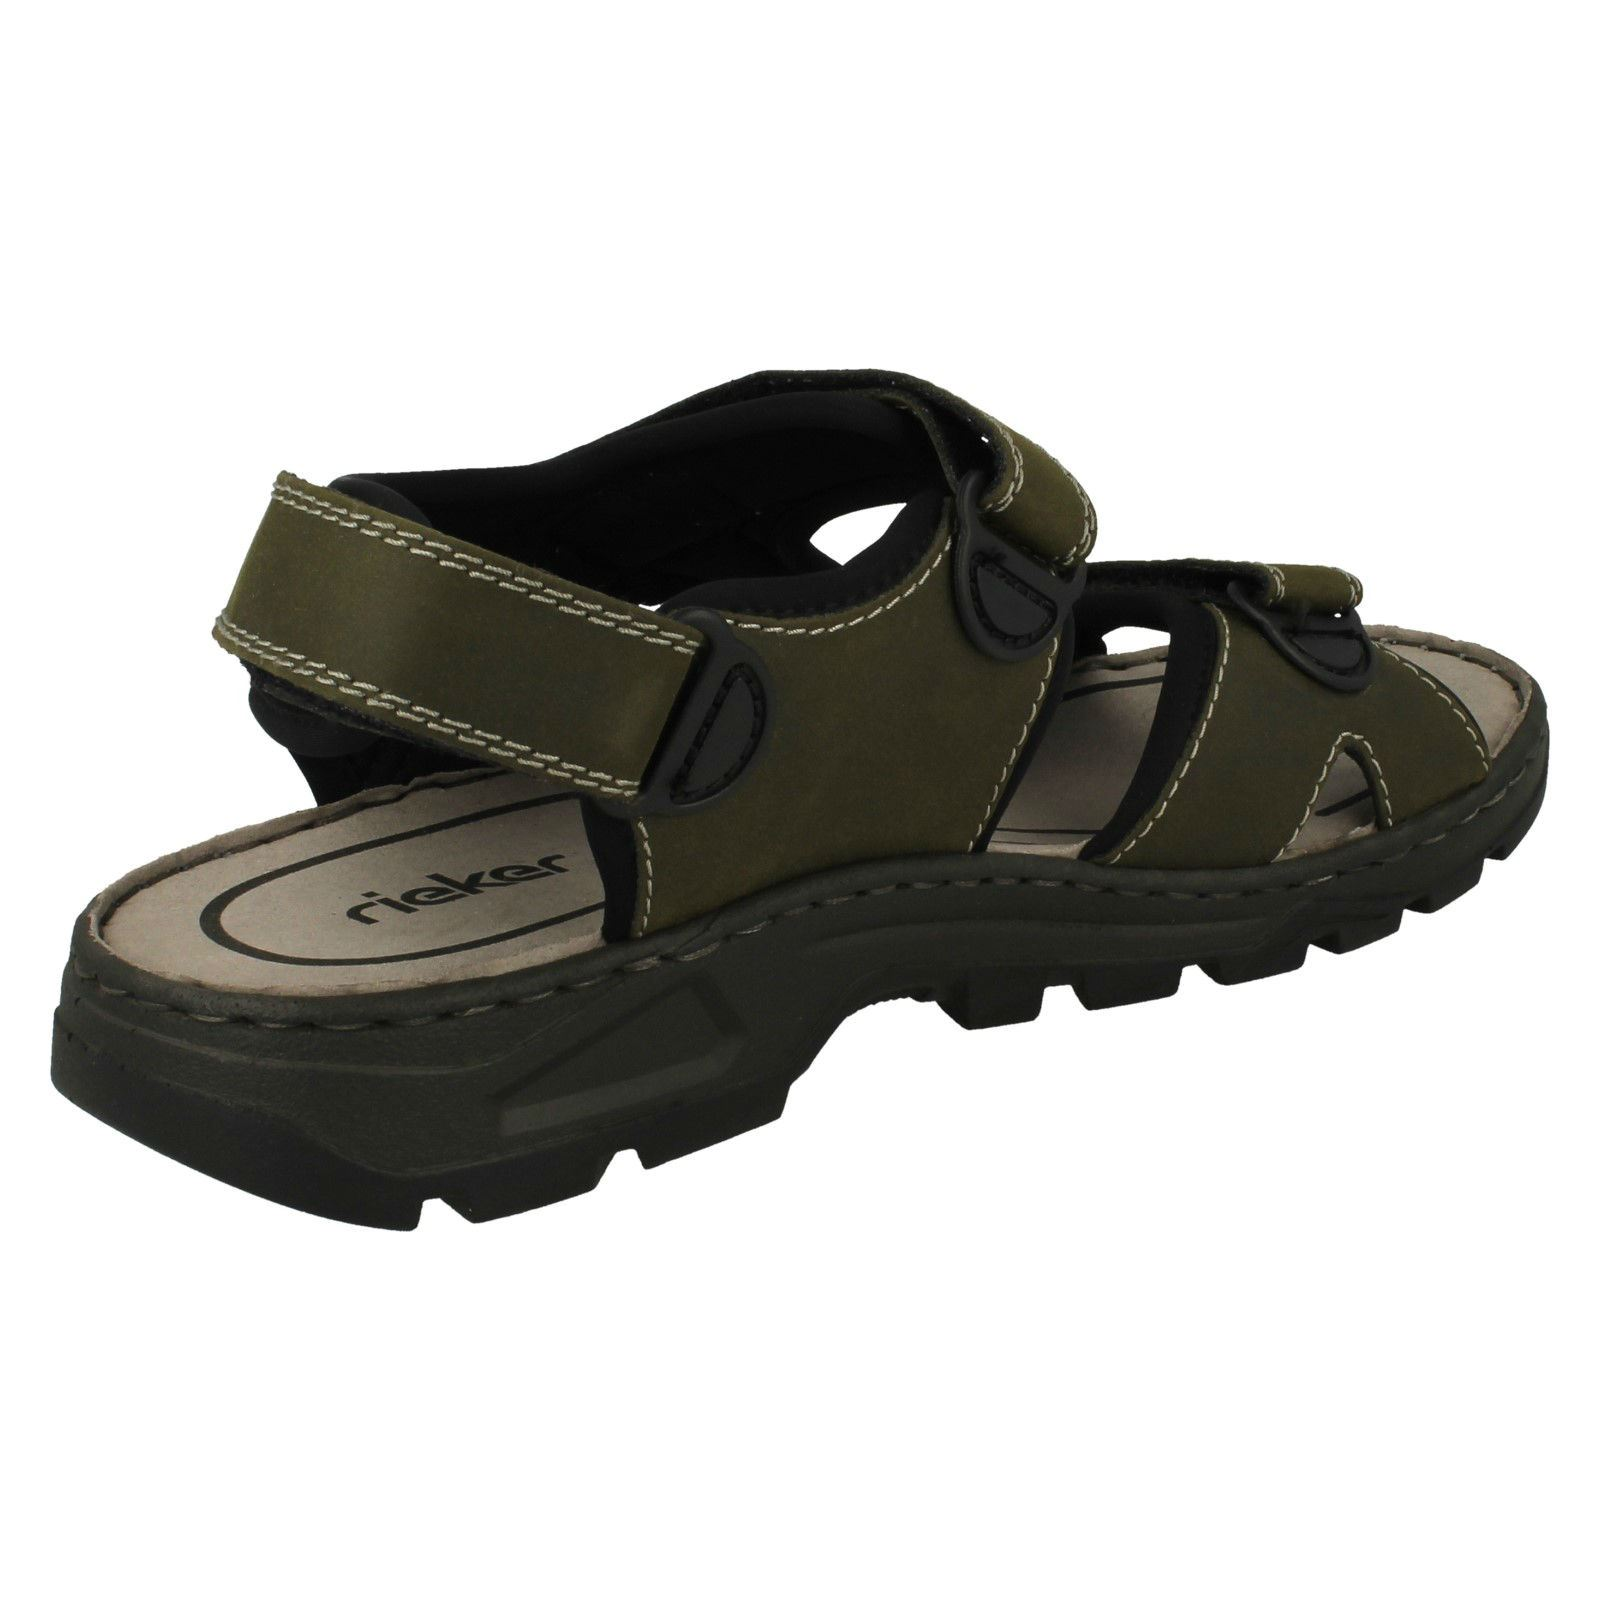 Mens-Rieker-Casual-Strapped-Sandals-26157 thumbnail 9